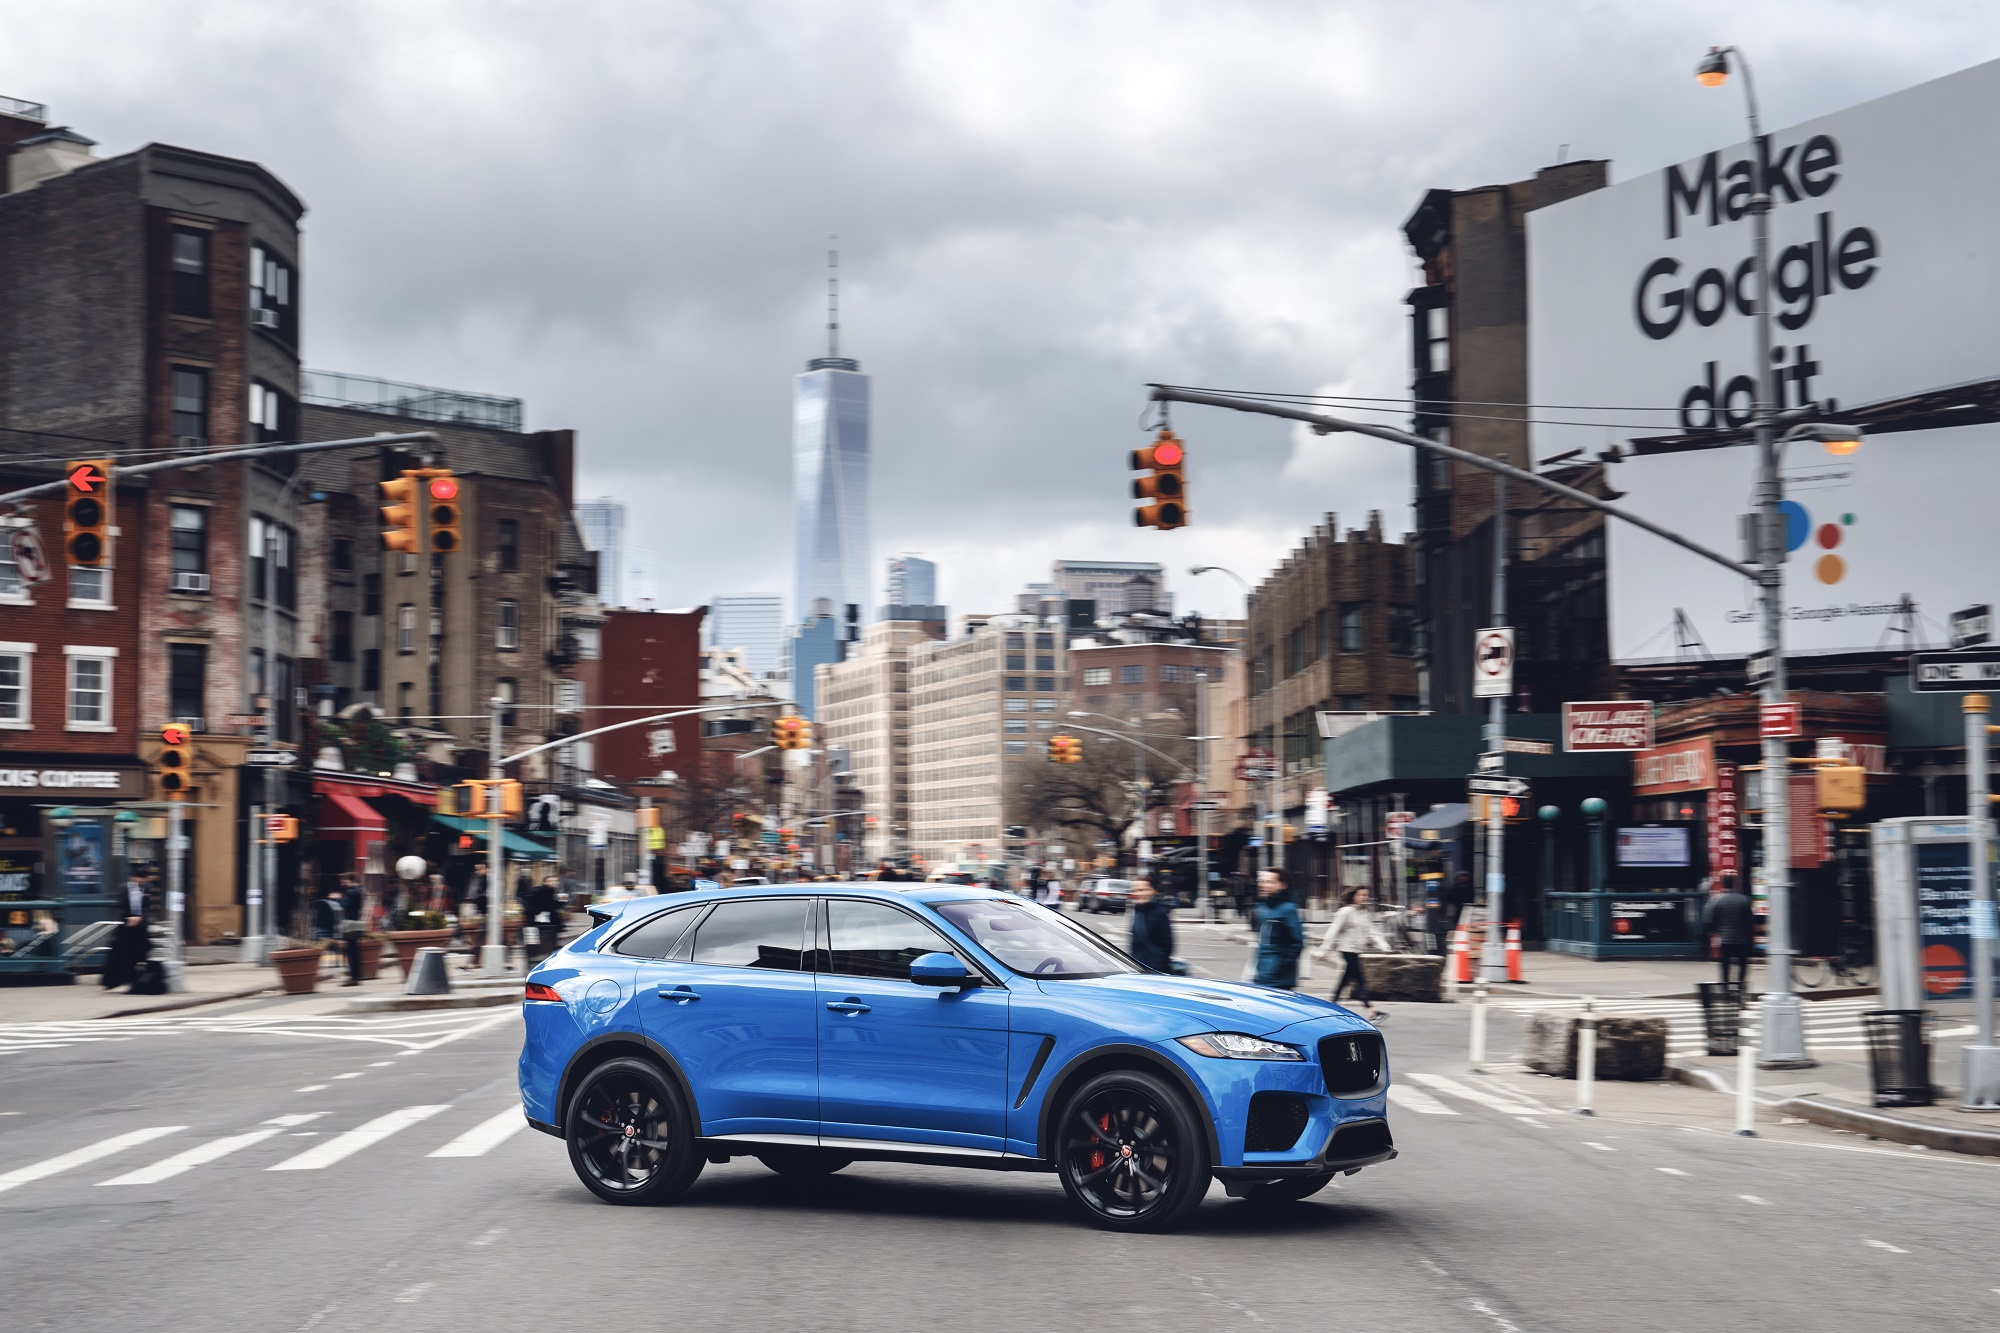 Jaguarforums.com 2019 2018 Jaguar F-PACE SVR News